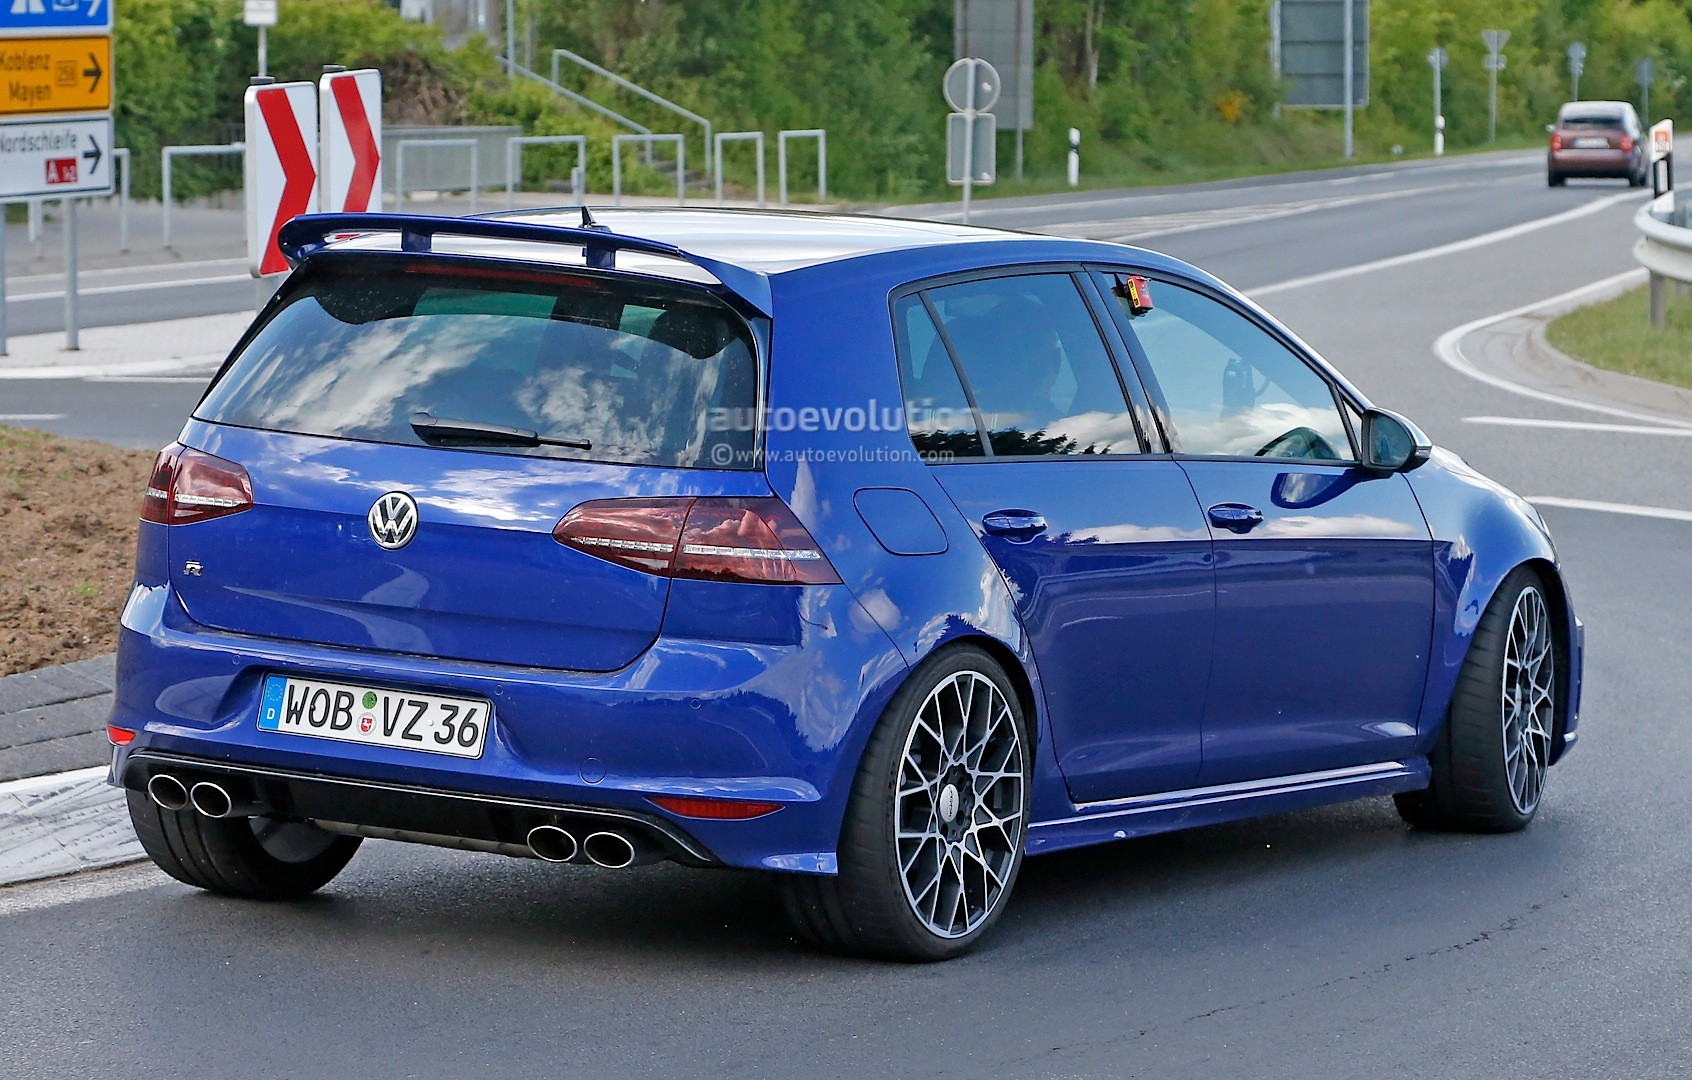 2016 volkswagen golf r400 first spy photos show hyper hatch with awd autoevolution. Black Bedroom Furniture Sets. Home Design Ideas